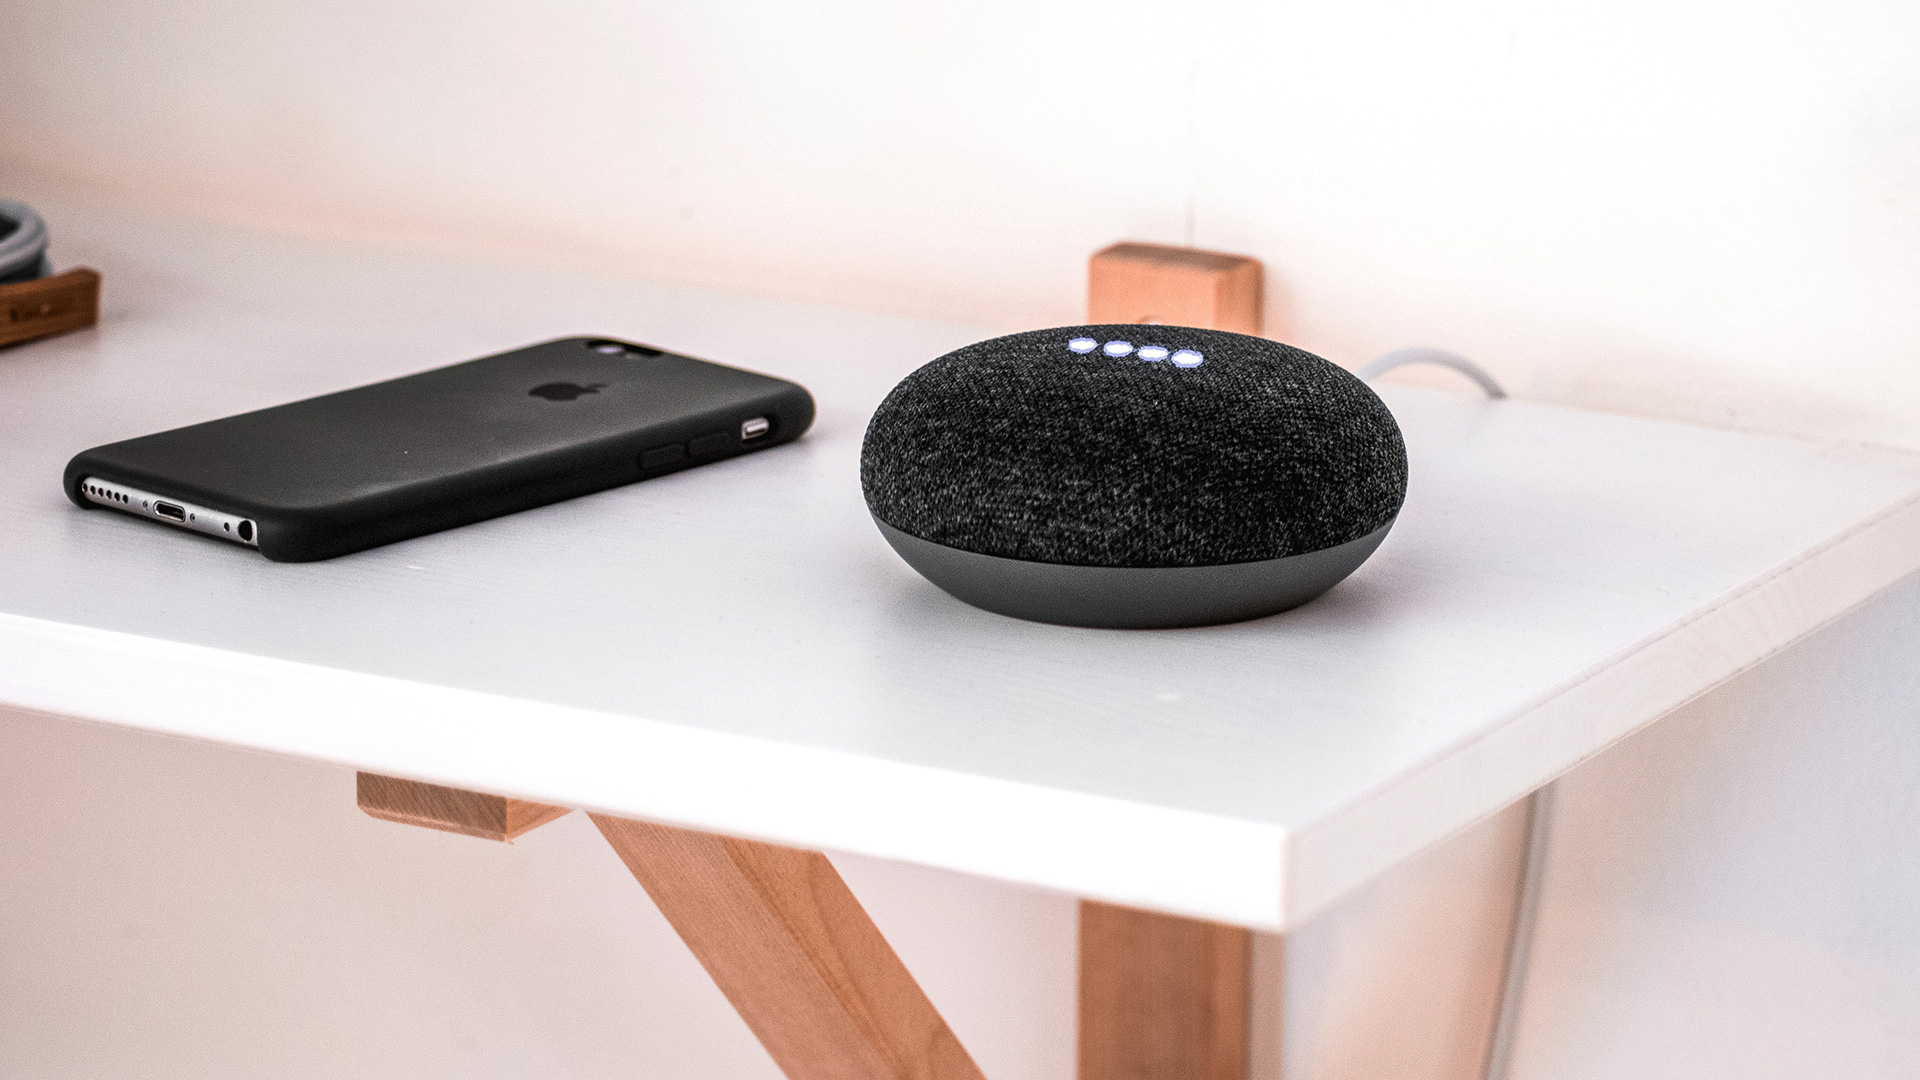 A smart speaker and phone placed next to each other on a shelf.